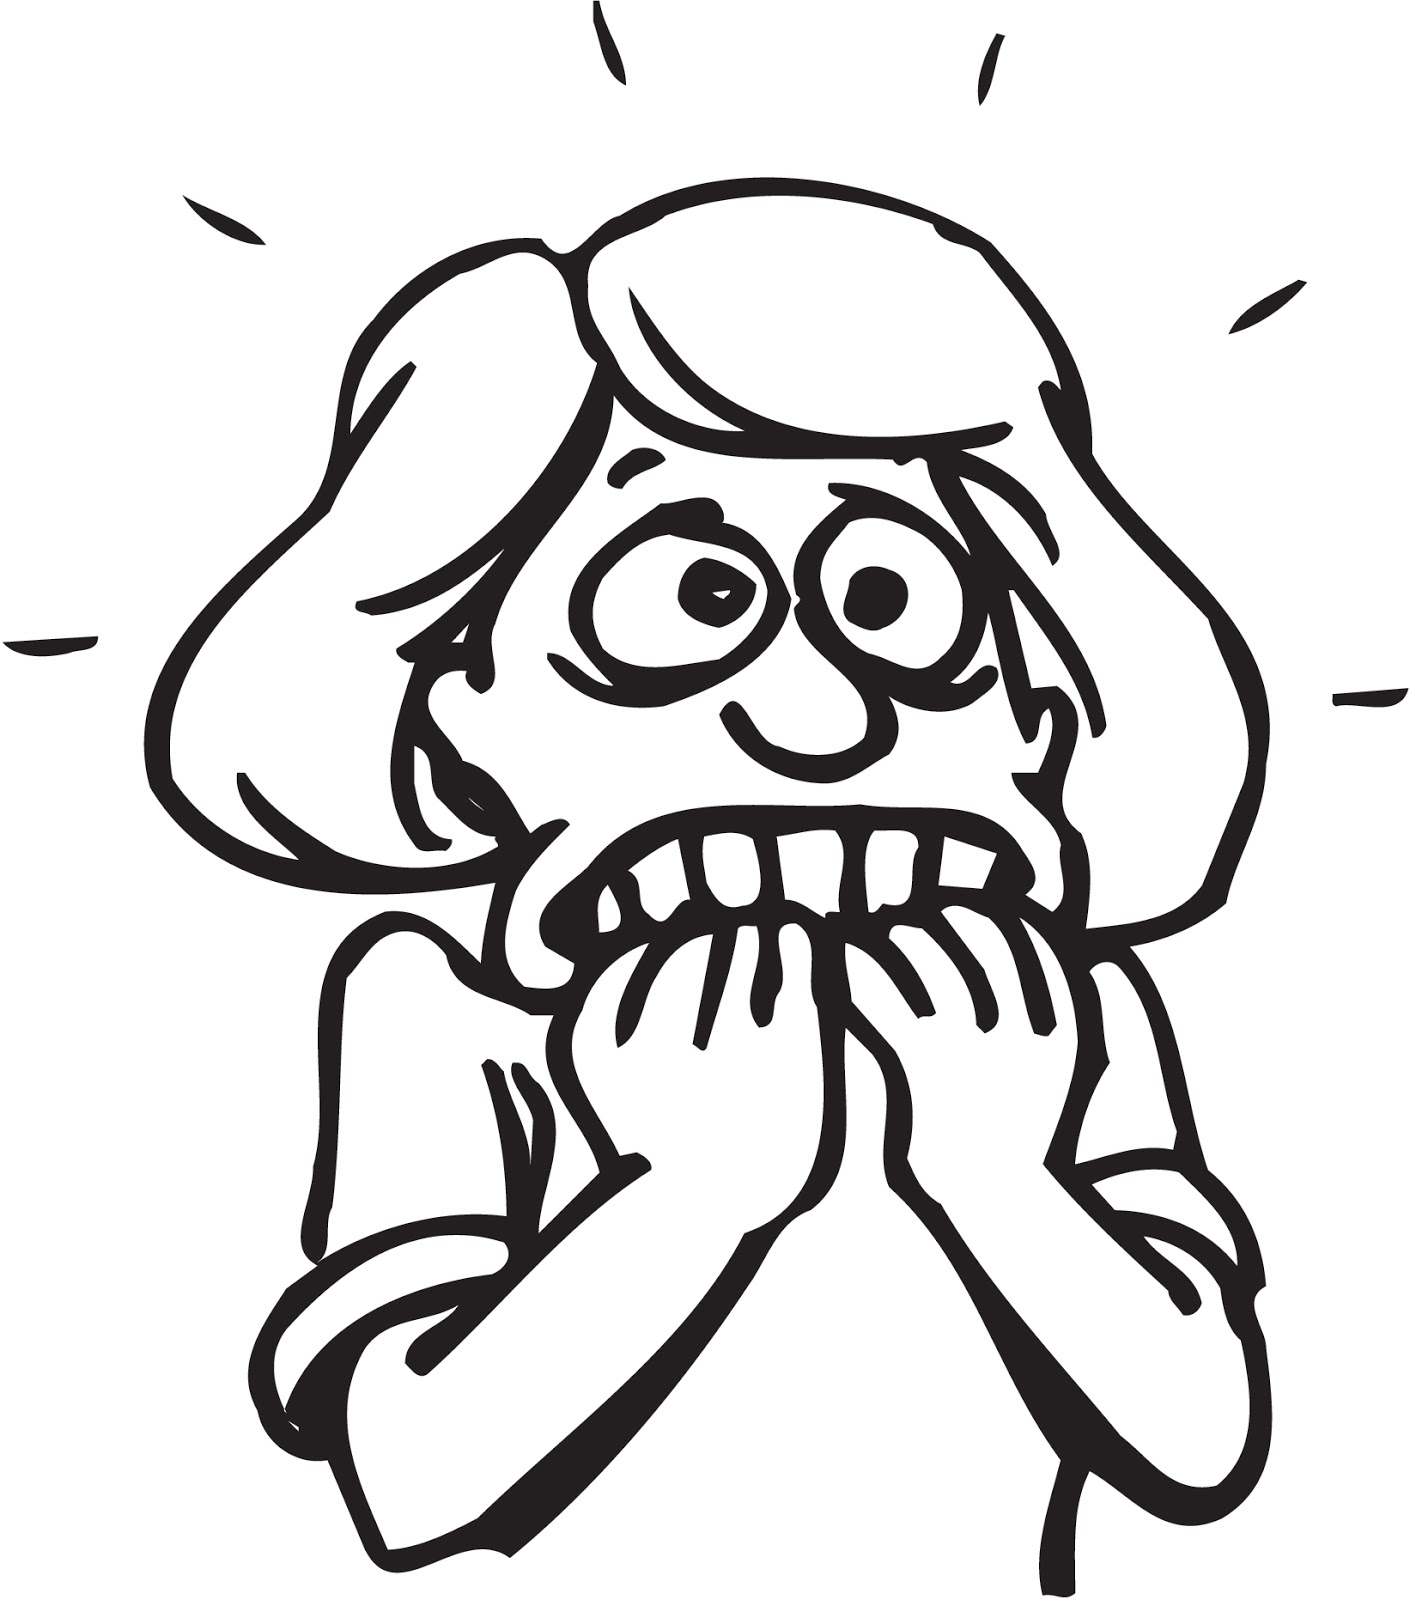 Anxiety clipart fear. Just thinking by robert